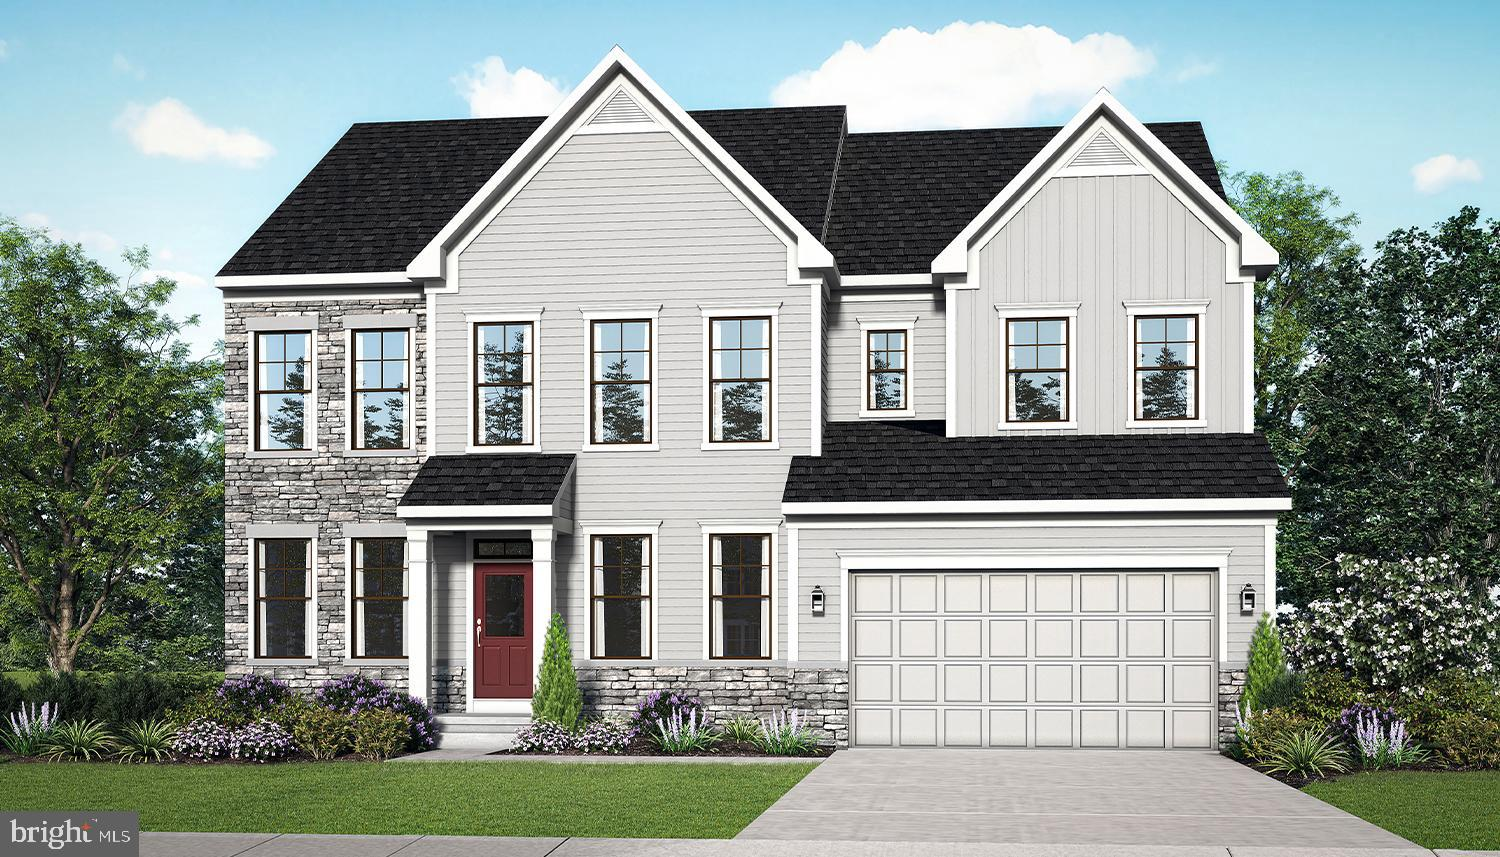 AVAILABLE FOR MOVE-IN JULY 2021!  Welcome home to the Premier Carter's Grove Community! Carter's Gro